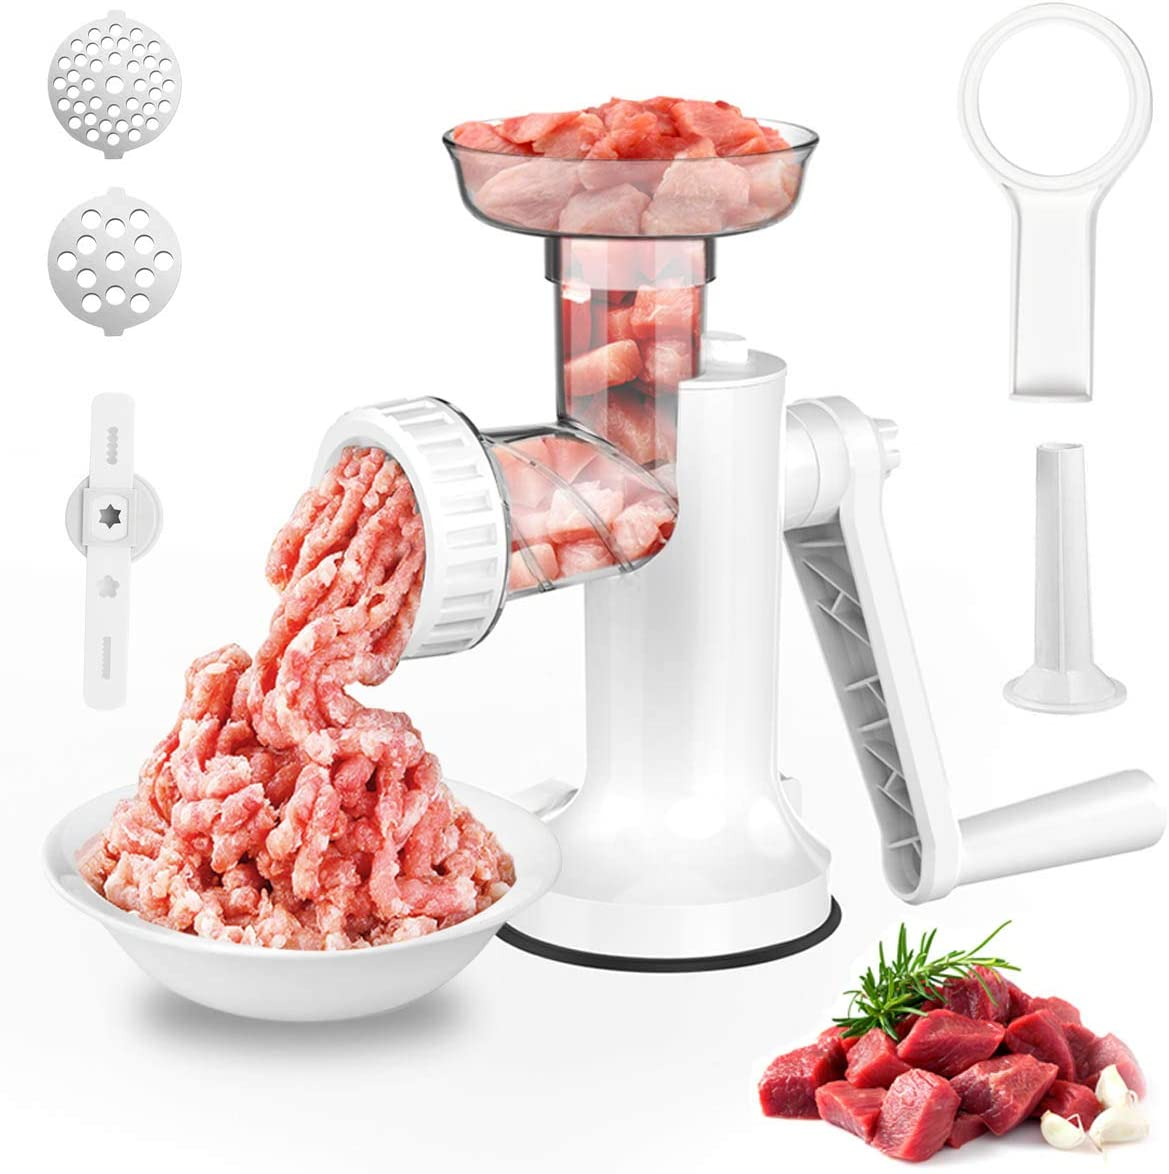 LHS Manual Meat Grinder, Heavy Duty Meat Mincer Sausage Stuffer, 3-in-1 Hand Grinder with Stainless Steel Blades for Meat, Sausage, Cookies, Easy to Clean